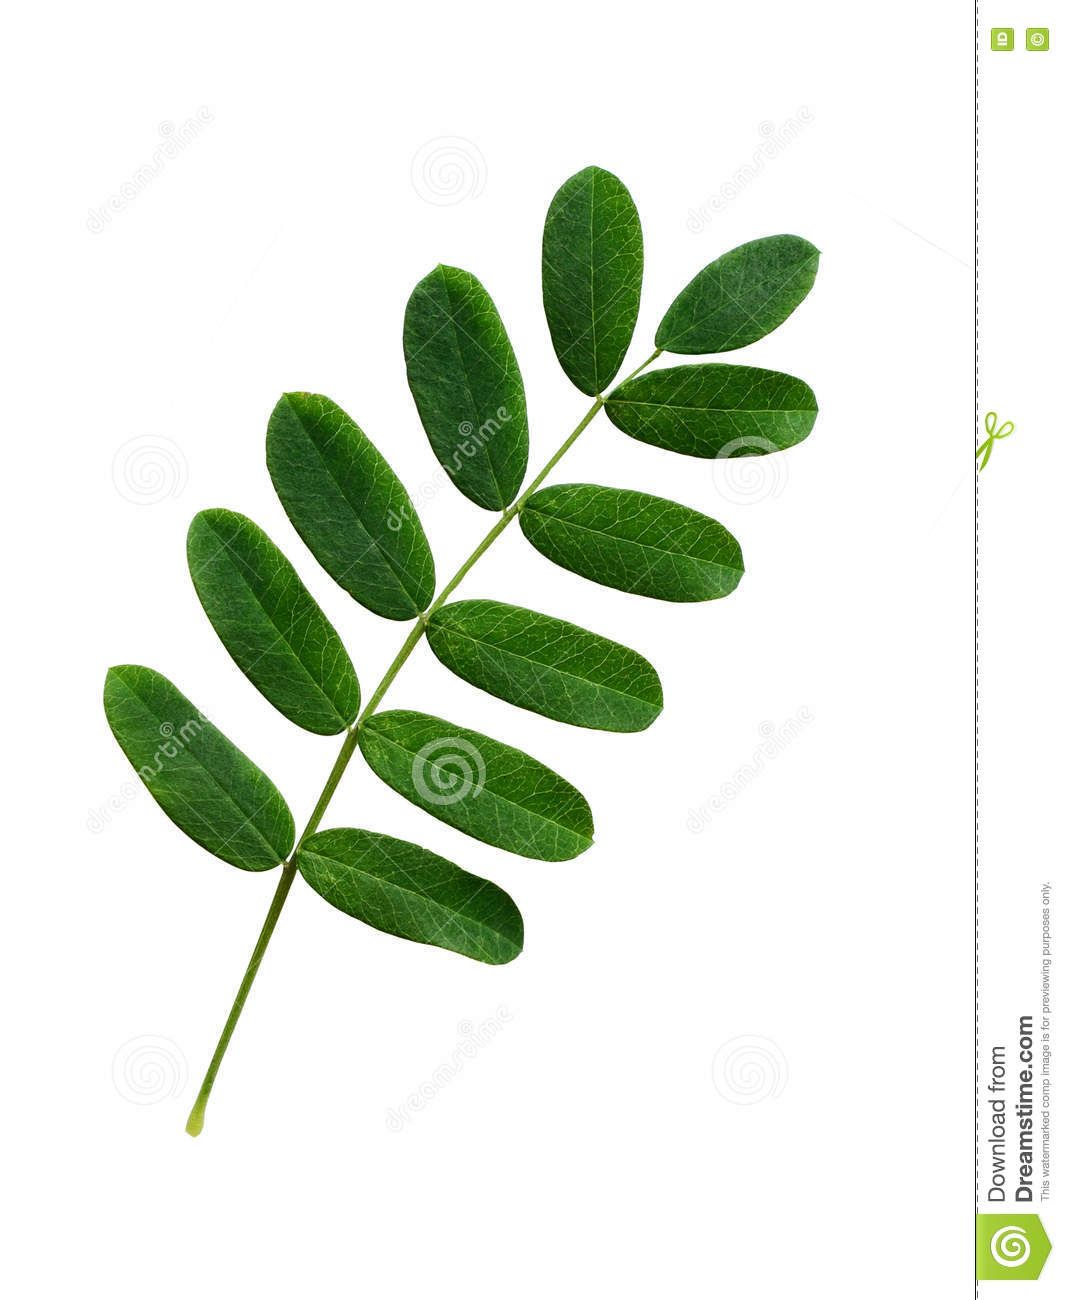 Image Result For Acacia Leaves Tattoos Leaves Plant Leaves Acacia